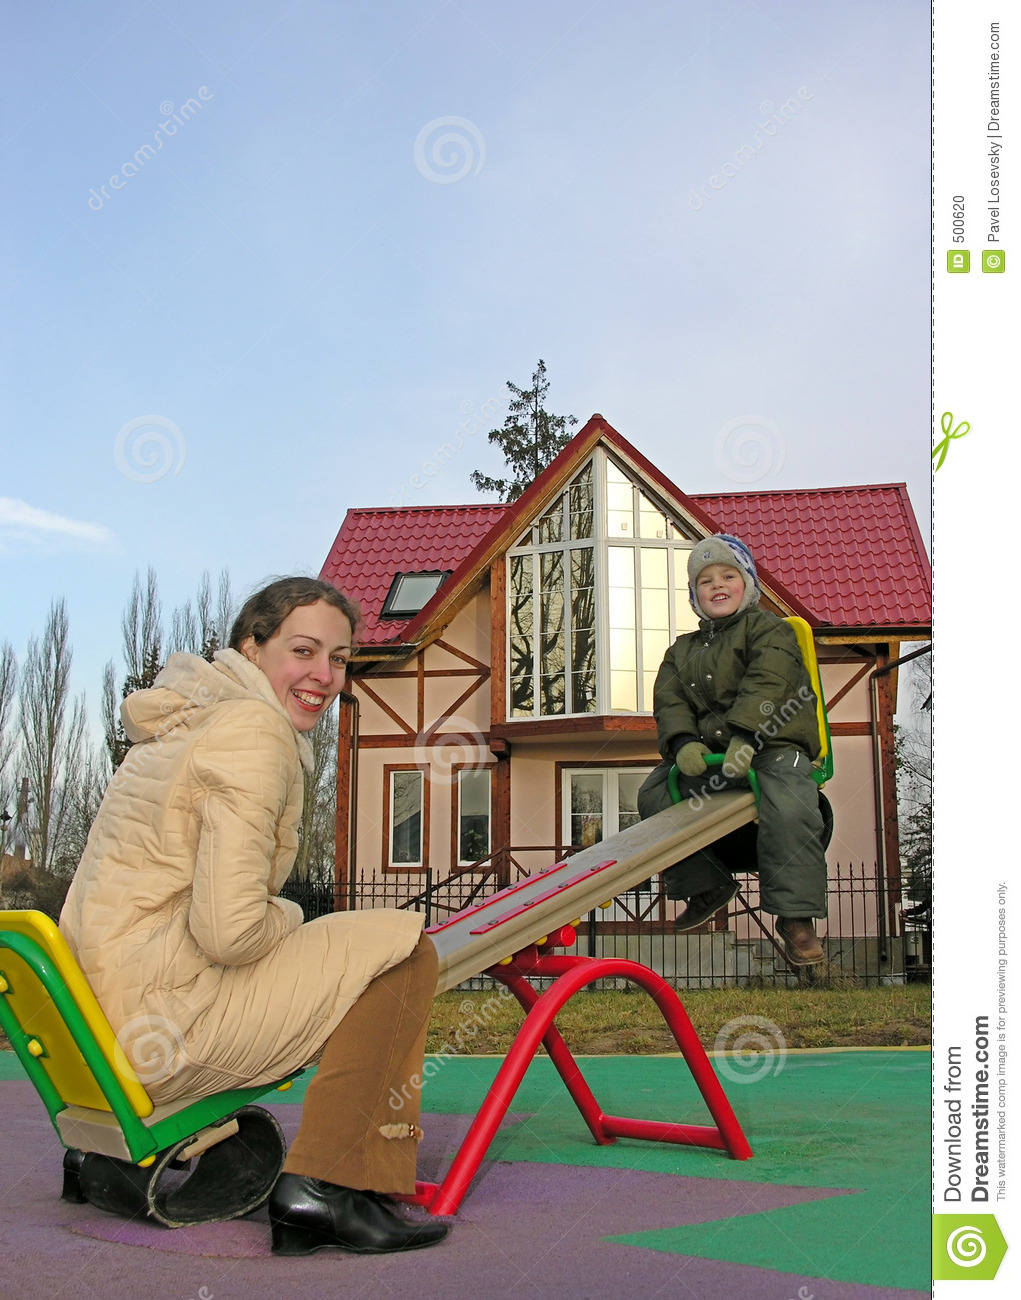 Family on seesaw and home